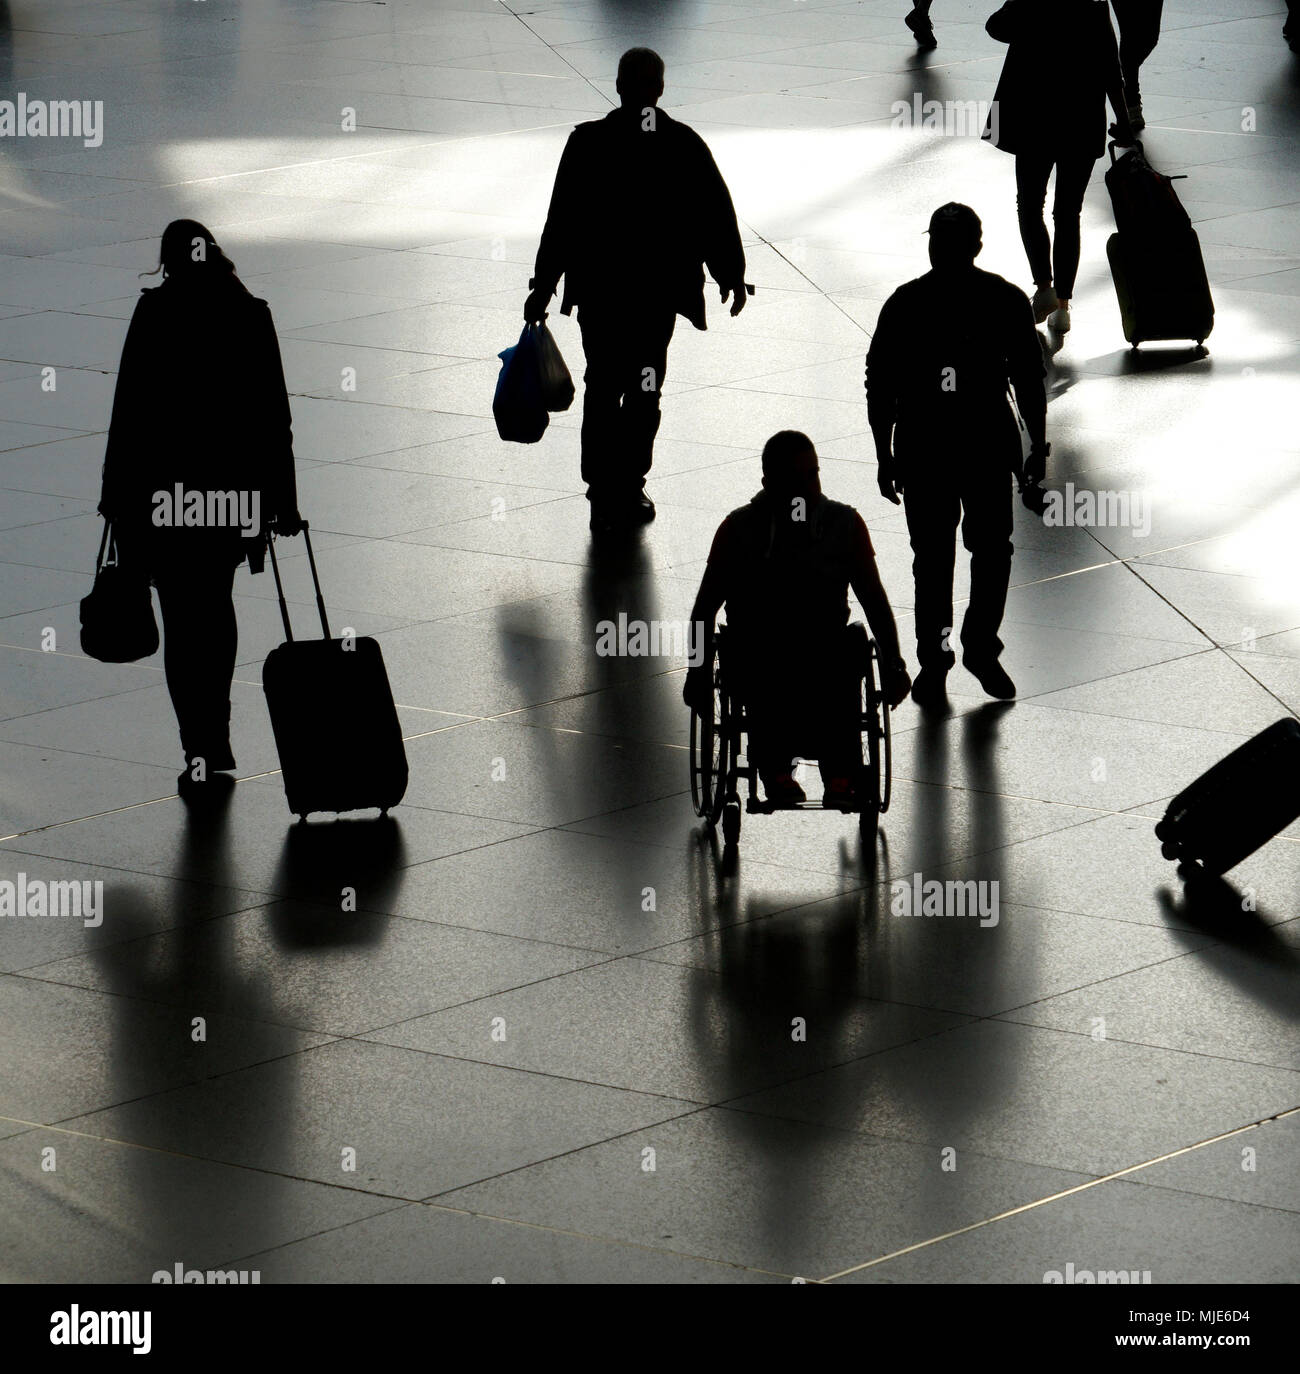 Pedestrians, passers-by, travellers, wheelchair user, movement, silhouette - Stock Image